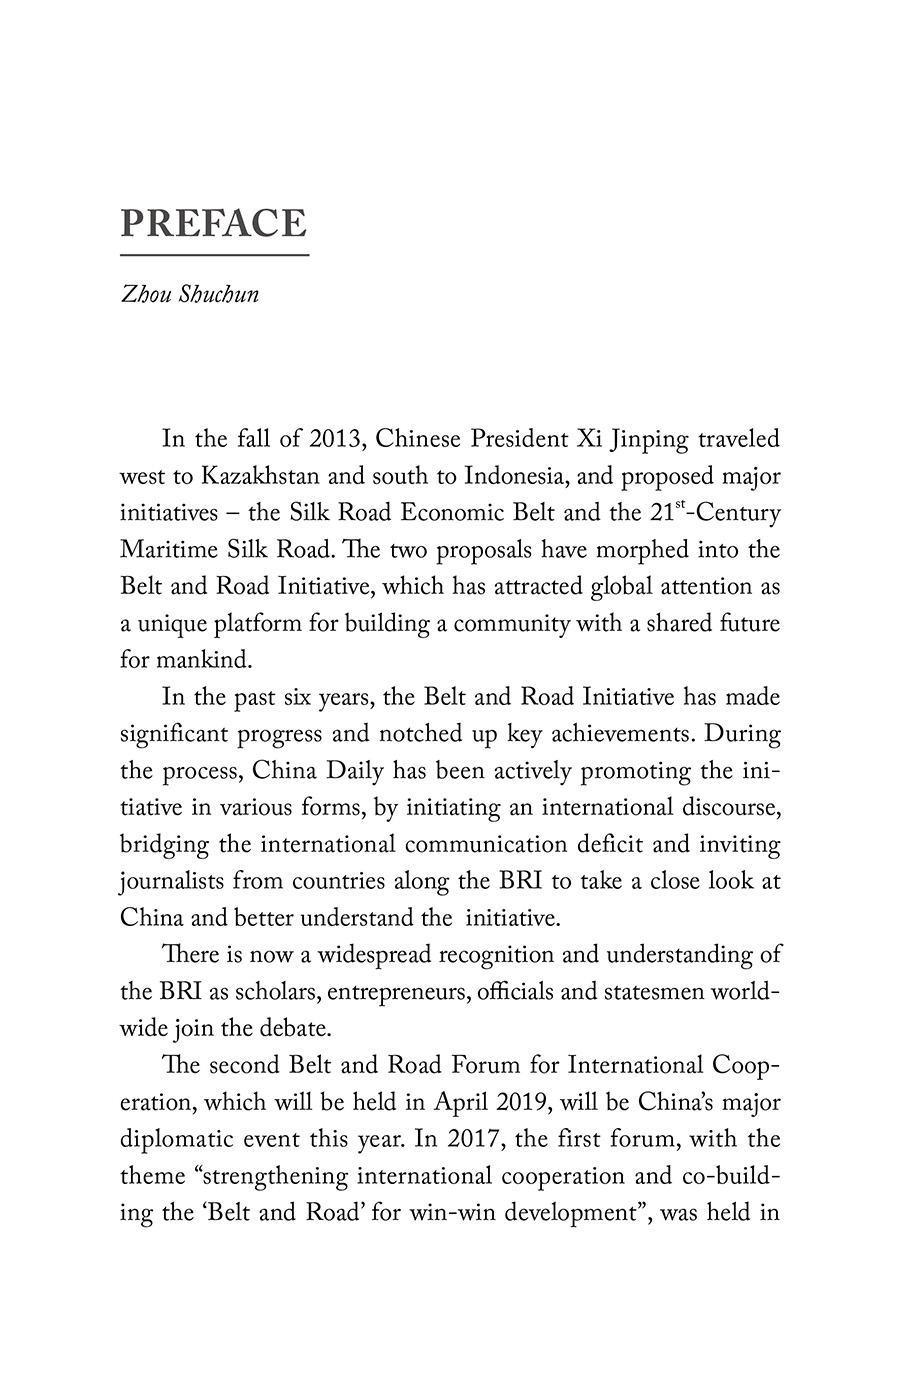 Sample pages of Common Prosperity: Global Views on Belt and Road Initiative (ISBN:9787508541297)